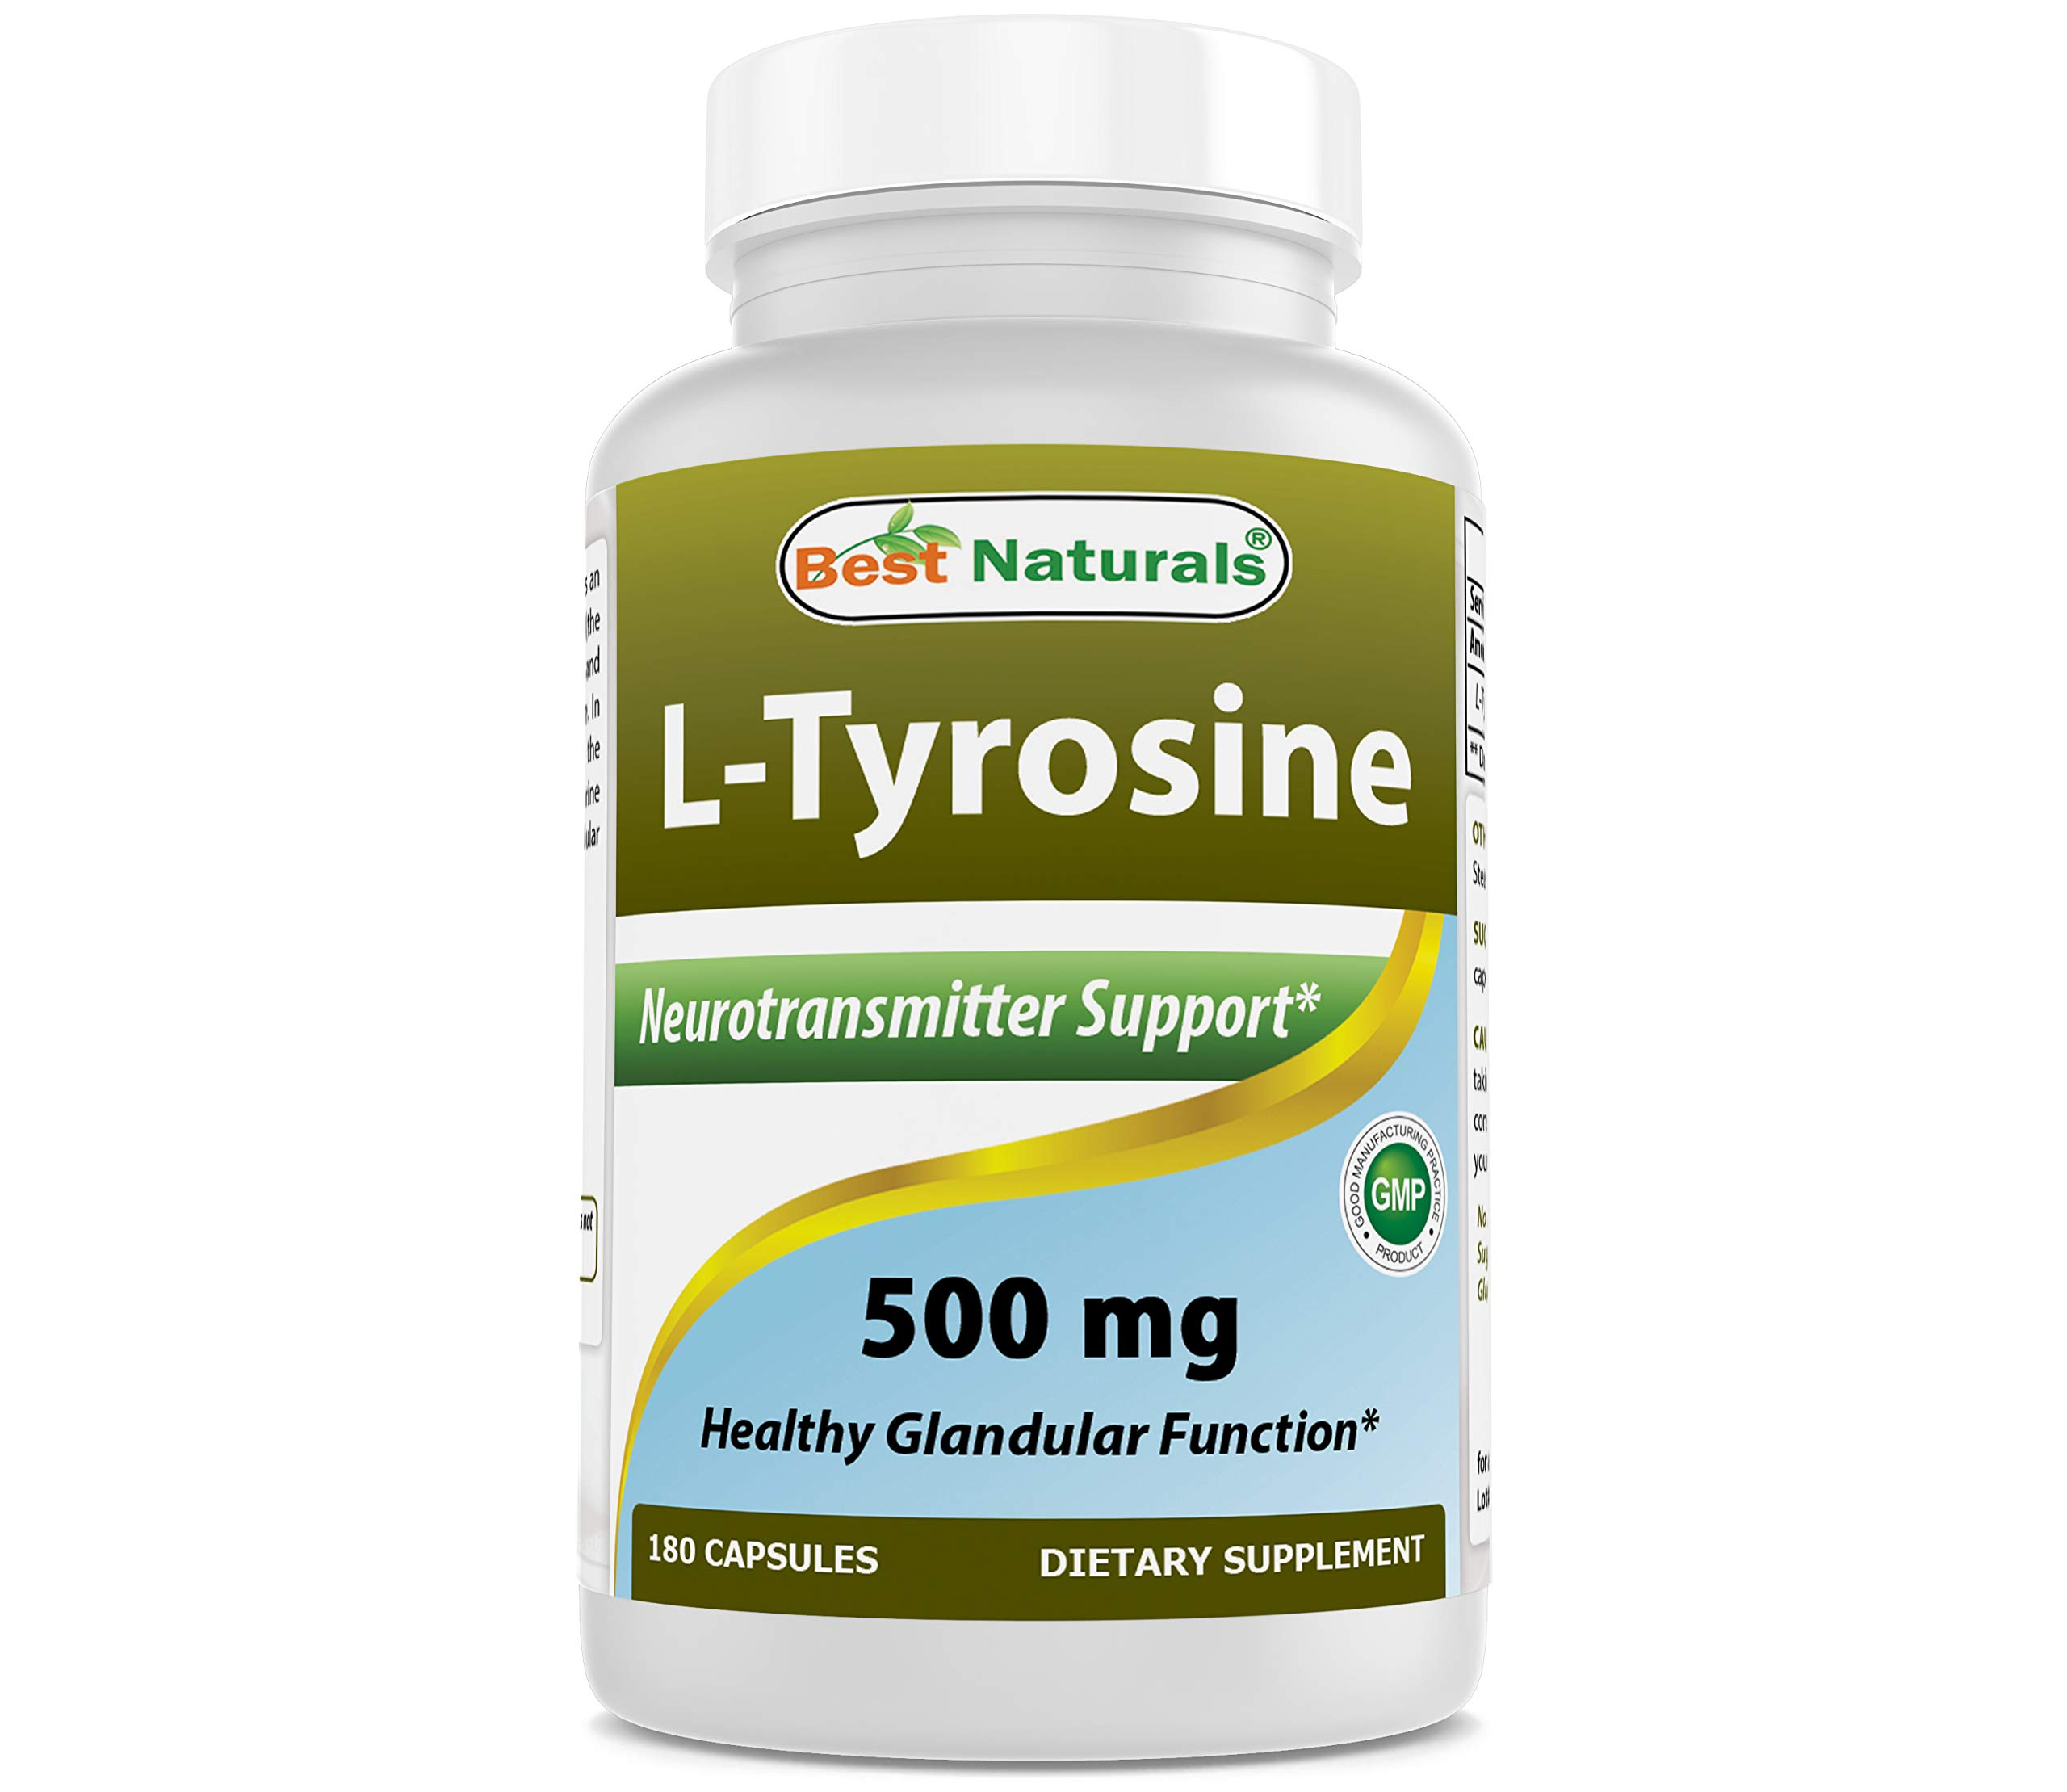 Best Naturals L-Tyrosine 500 Mg 180 Capsules - Supports Mental Alertness, Energy, Focus, Healthy Glandular Function and Balance by Best Naturals